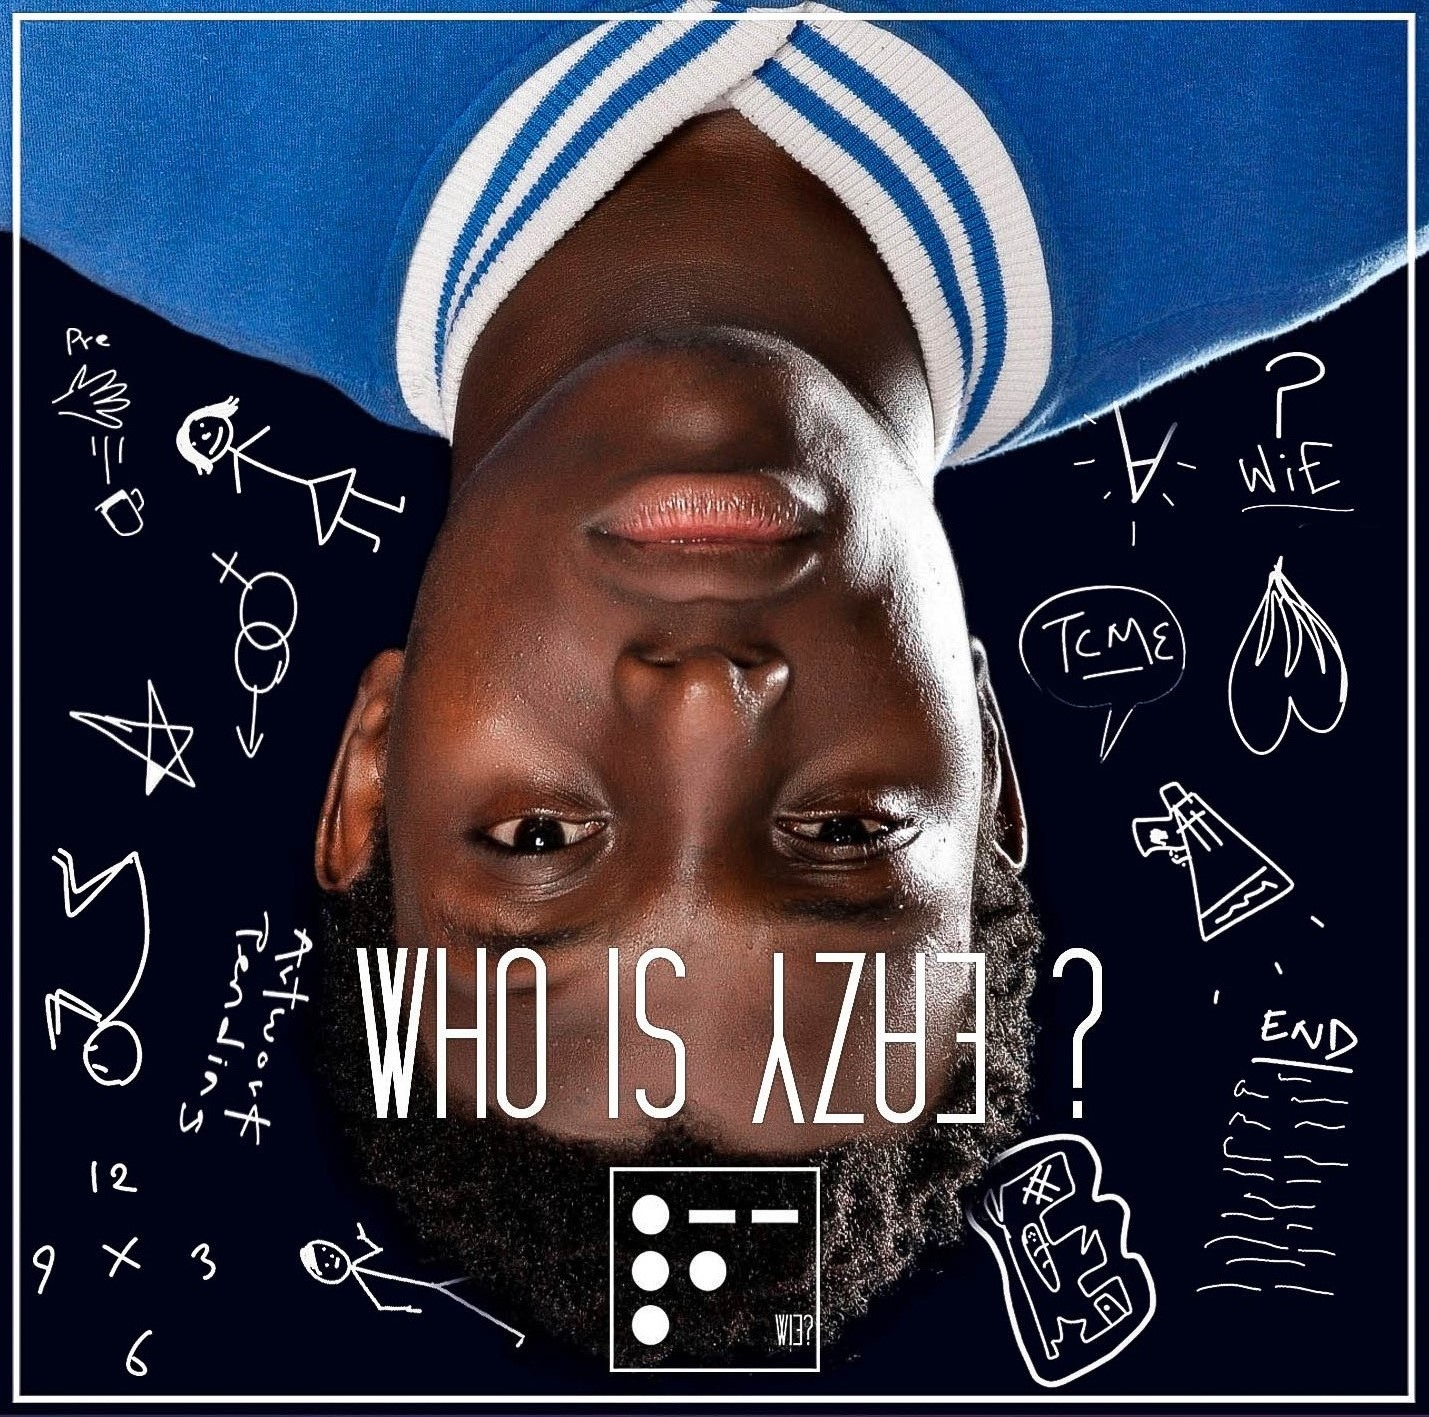 Cover art for Eazy Bob Wizzy's Who Is Eazy? album.